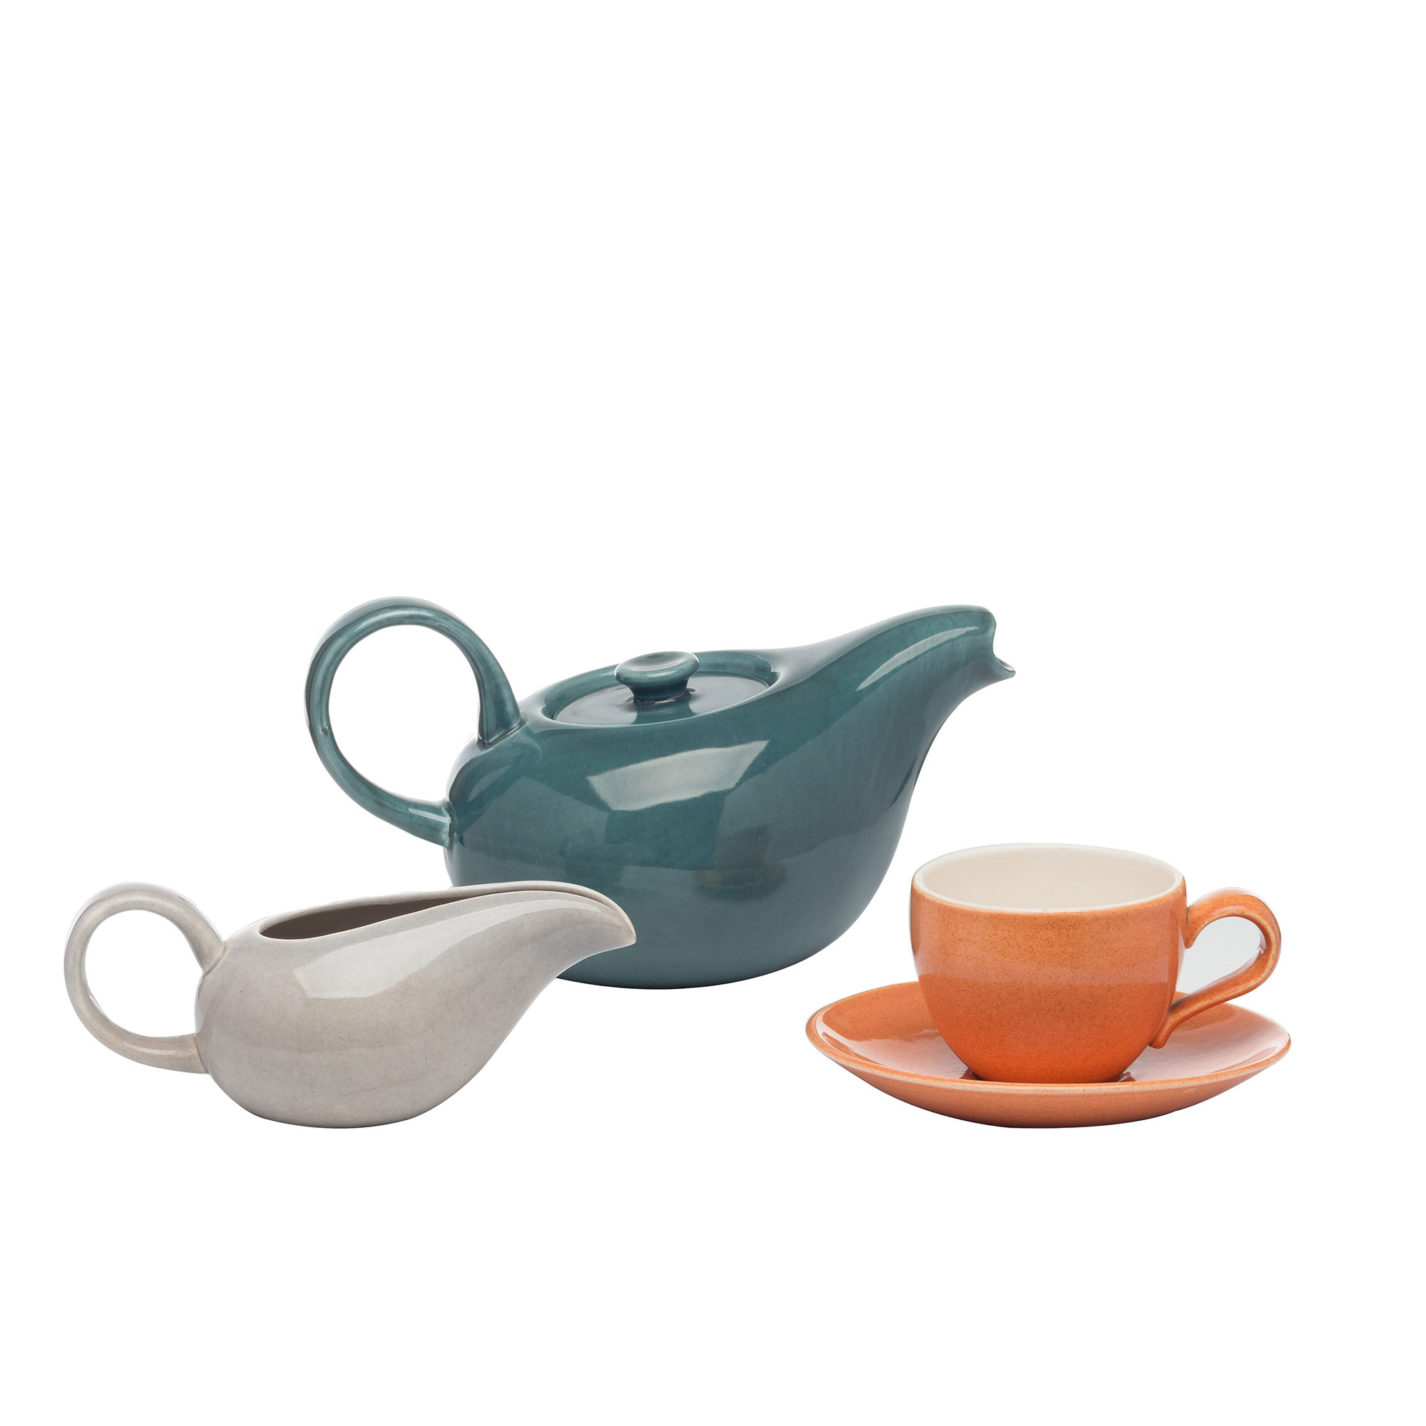 Ceramic dishes. Dark green teapot with elongated spout and rounded handle, elongated grey creamer with open spout and rounded handle, and simple coral-colored teacup with saucer and off-whited cup interior.